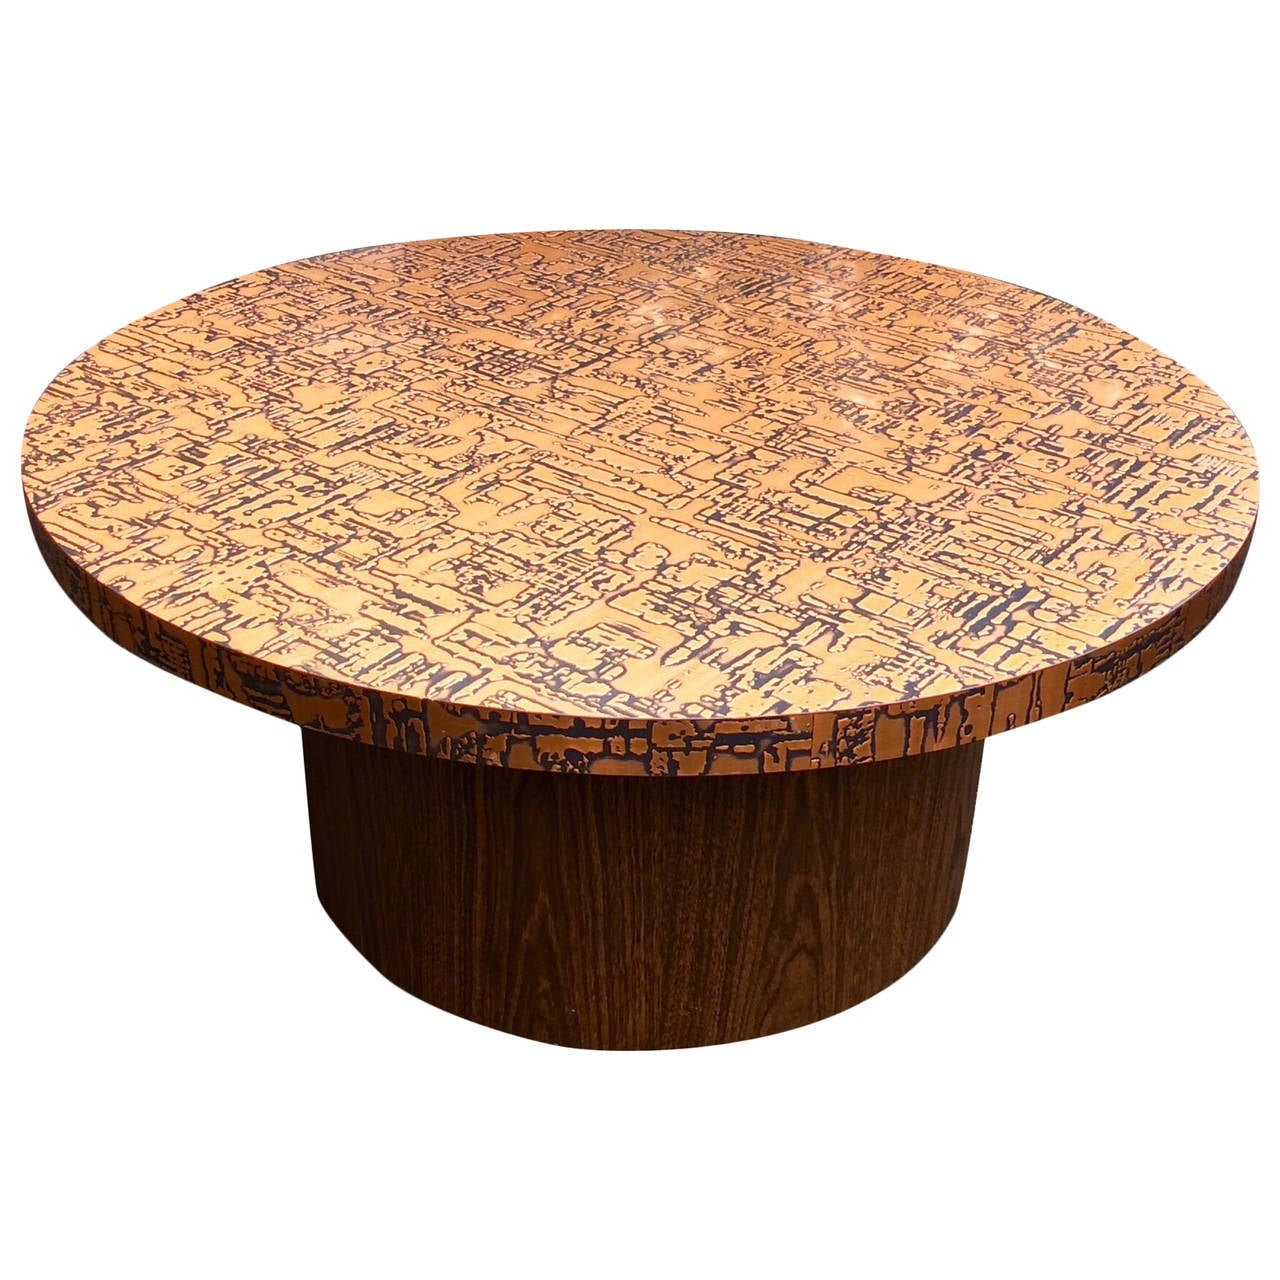 Copper Kettle Drum Coffee Table: Copper Clad Abstract Pattern Coffee Table At 1stdibs